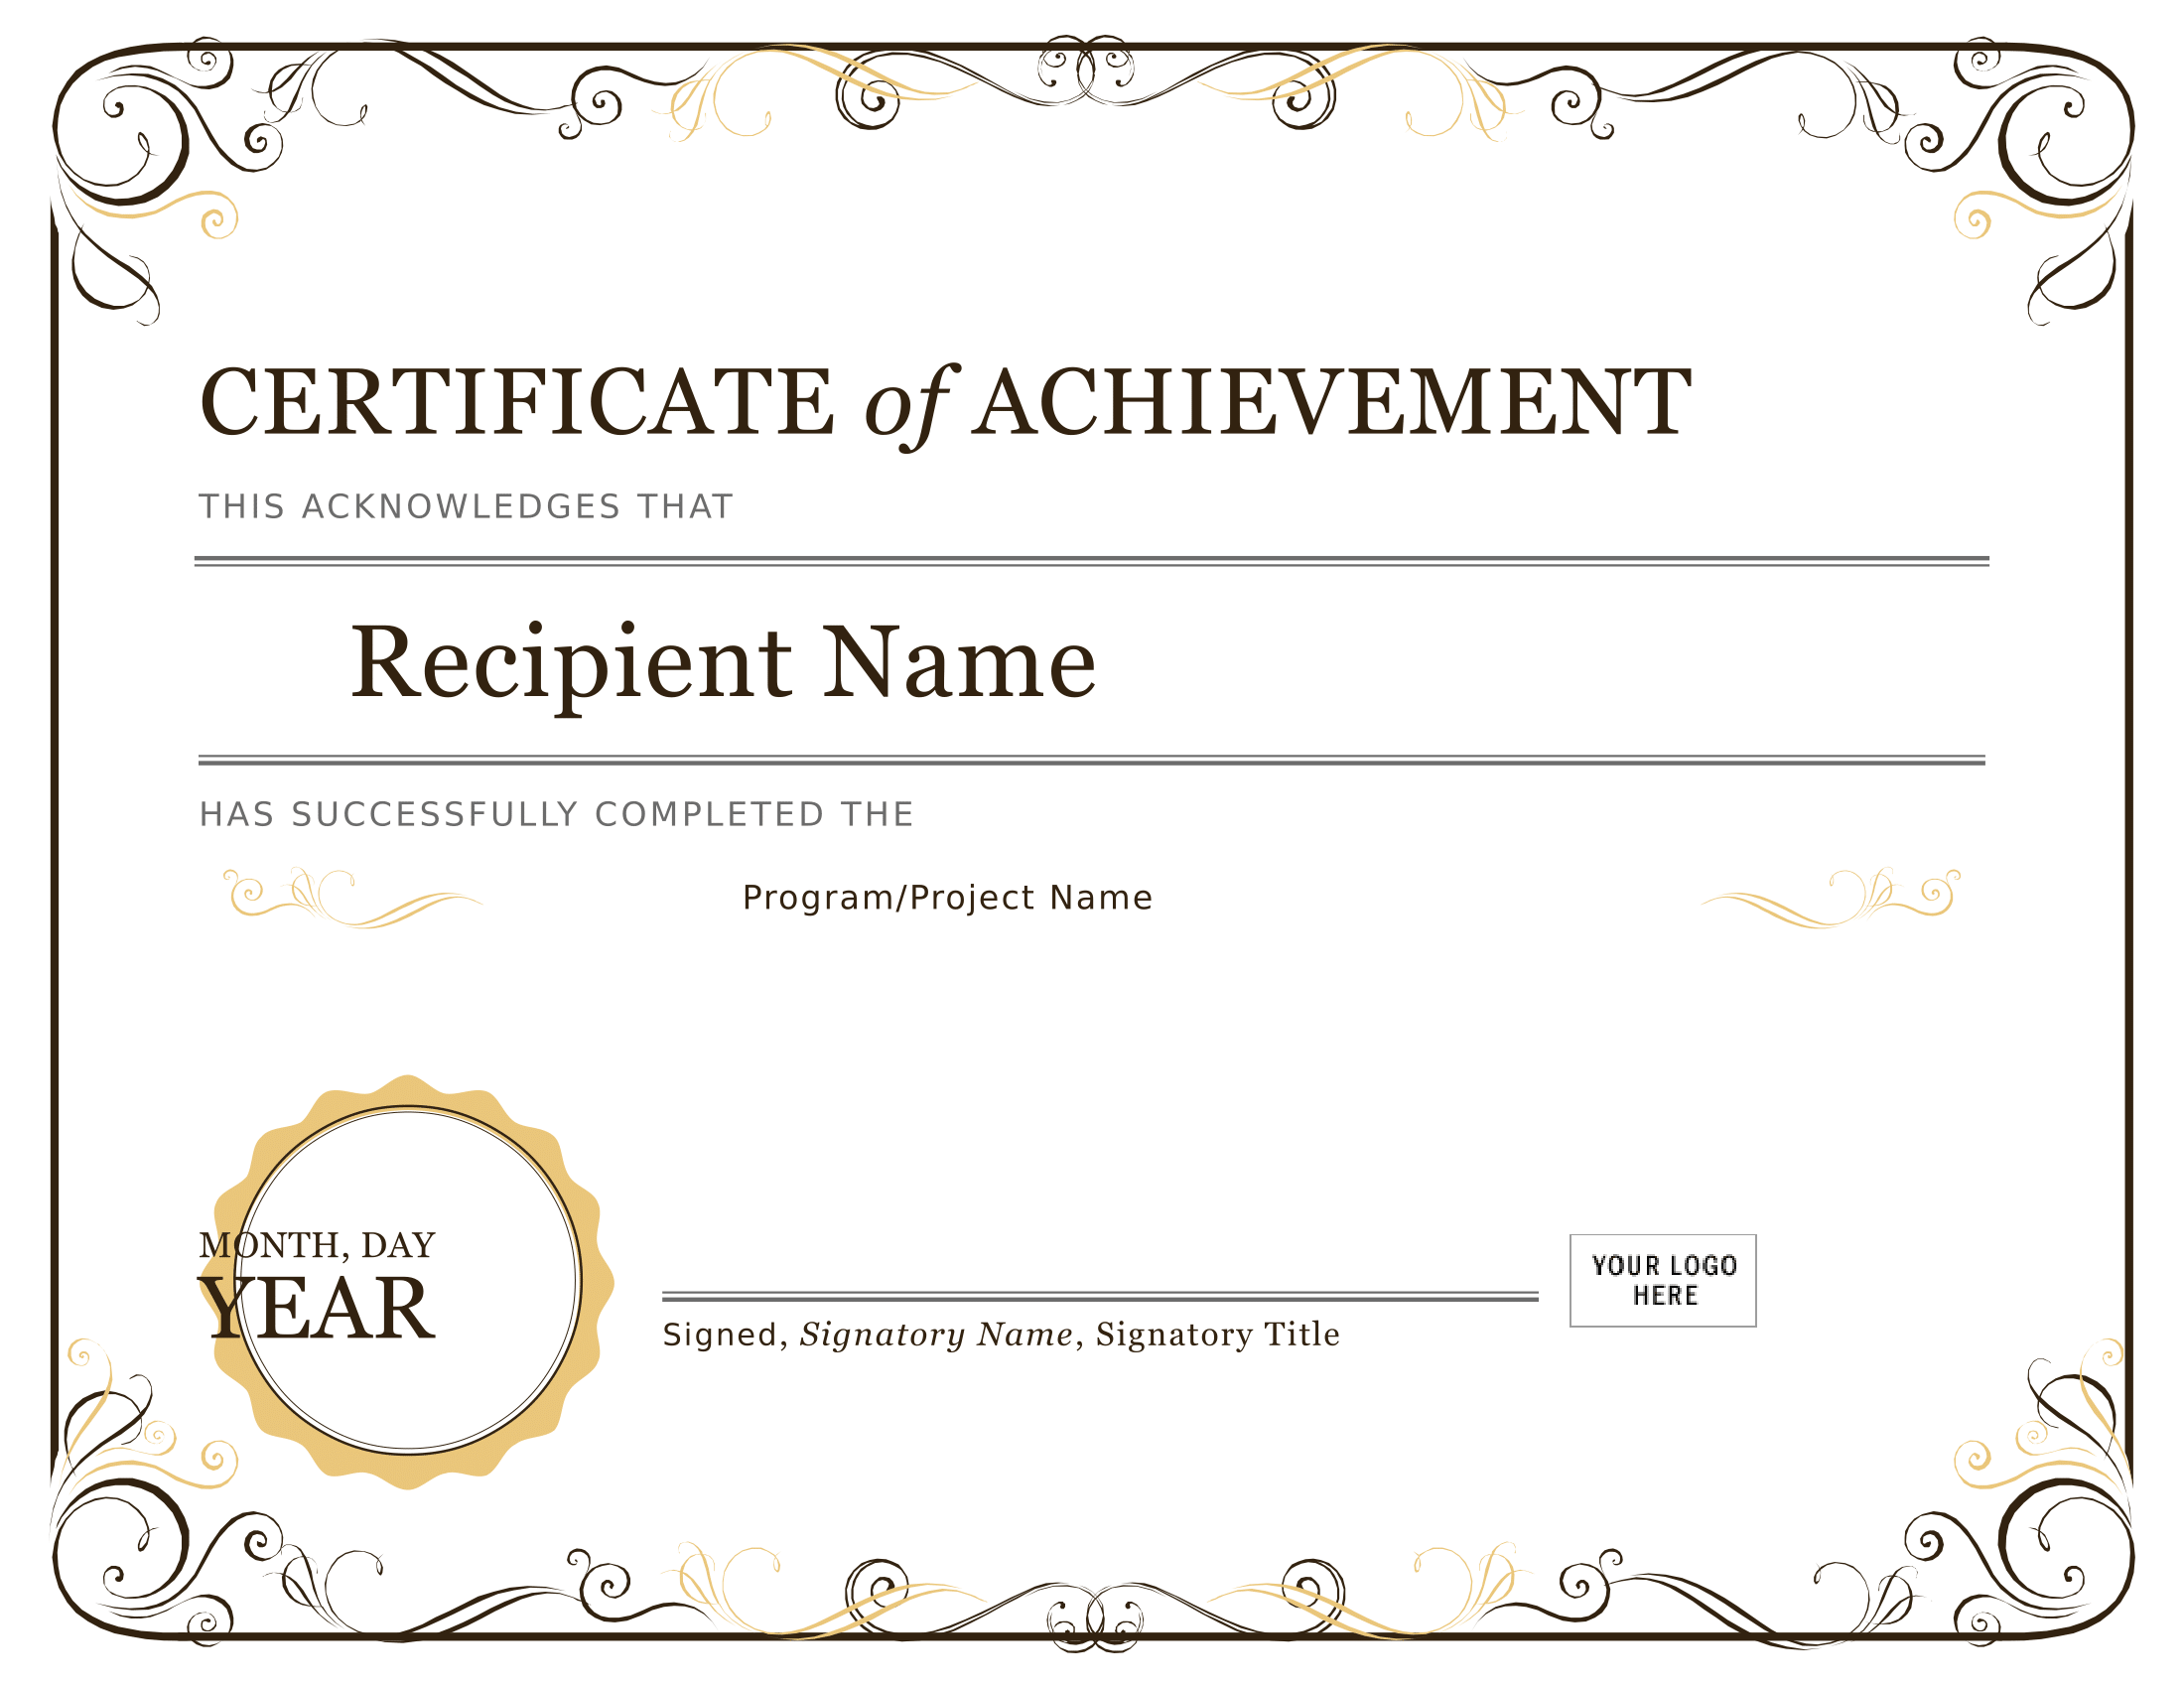 Certificates download free business letter templates and for Free online certificate templates